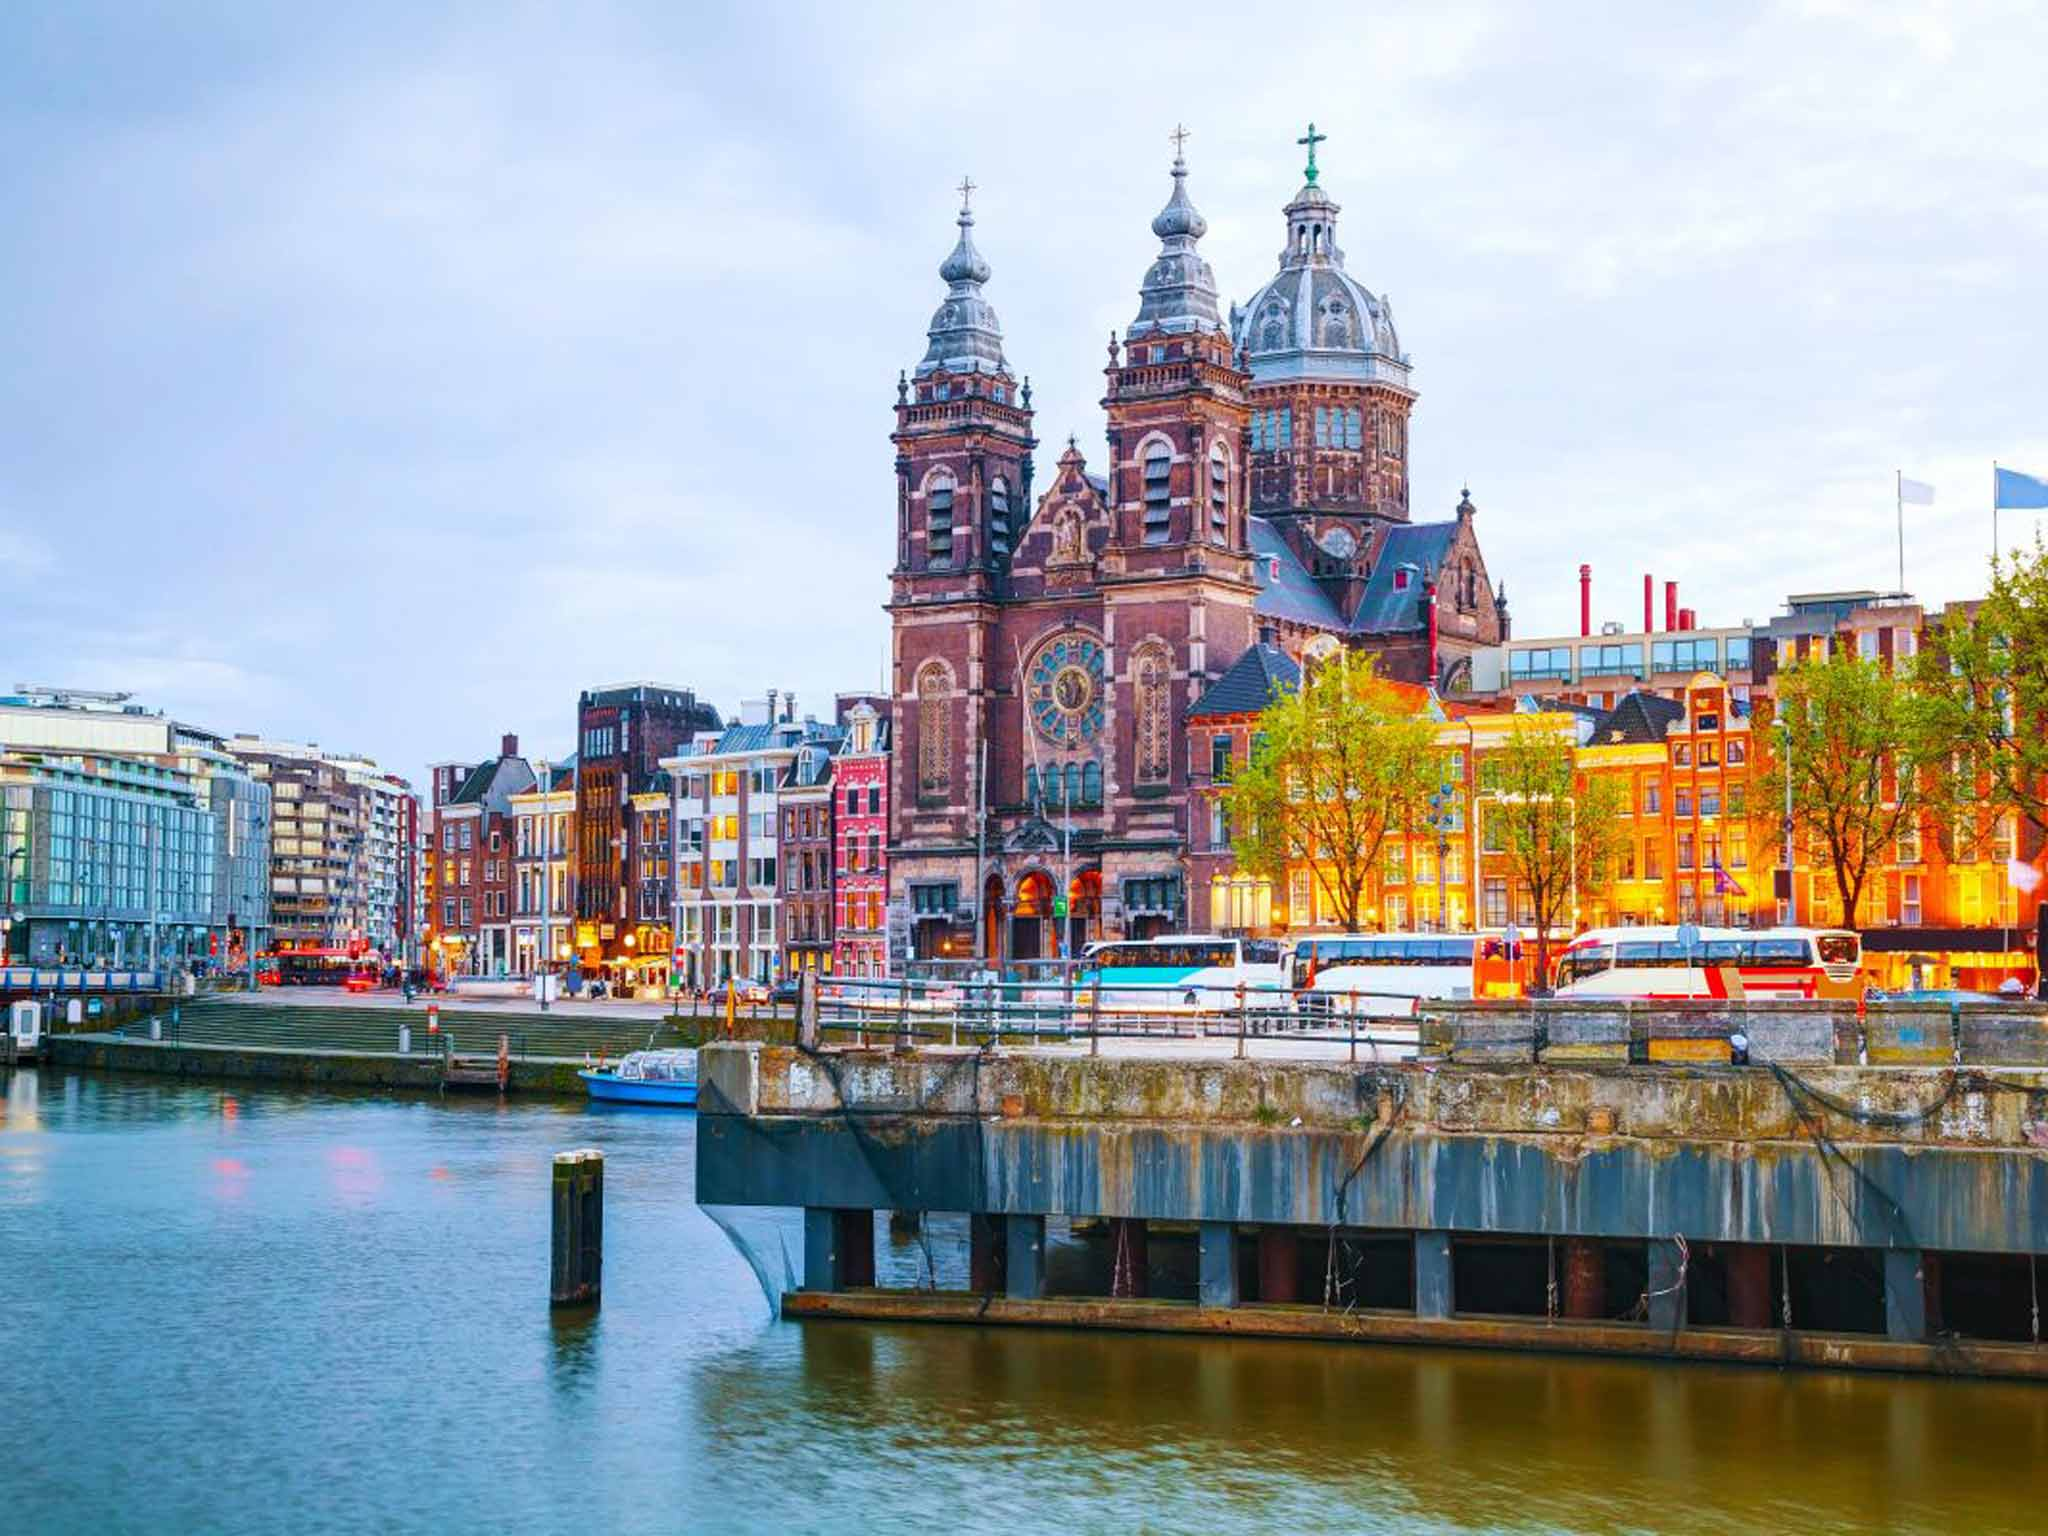 Amsterdam travel tips: Where to go and what to see in 48 ...